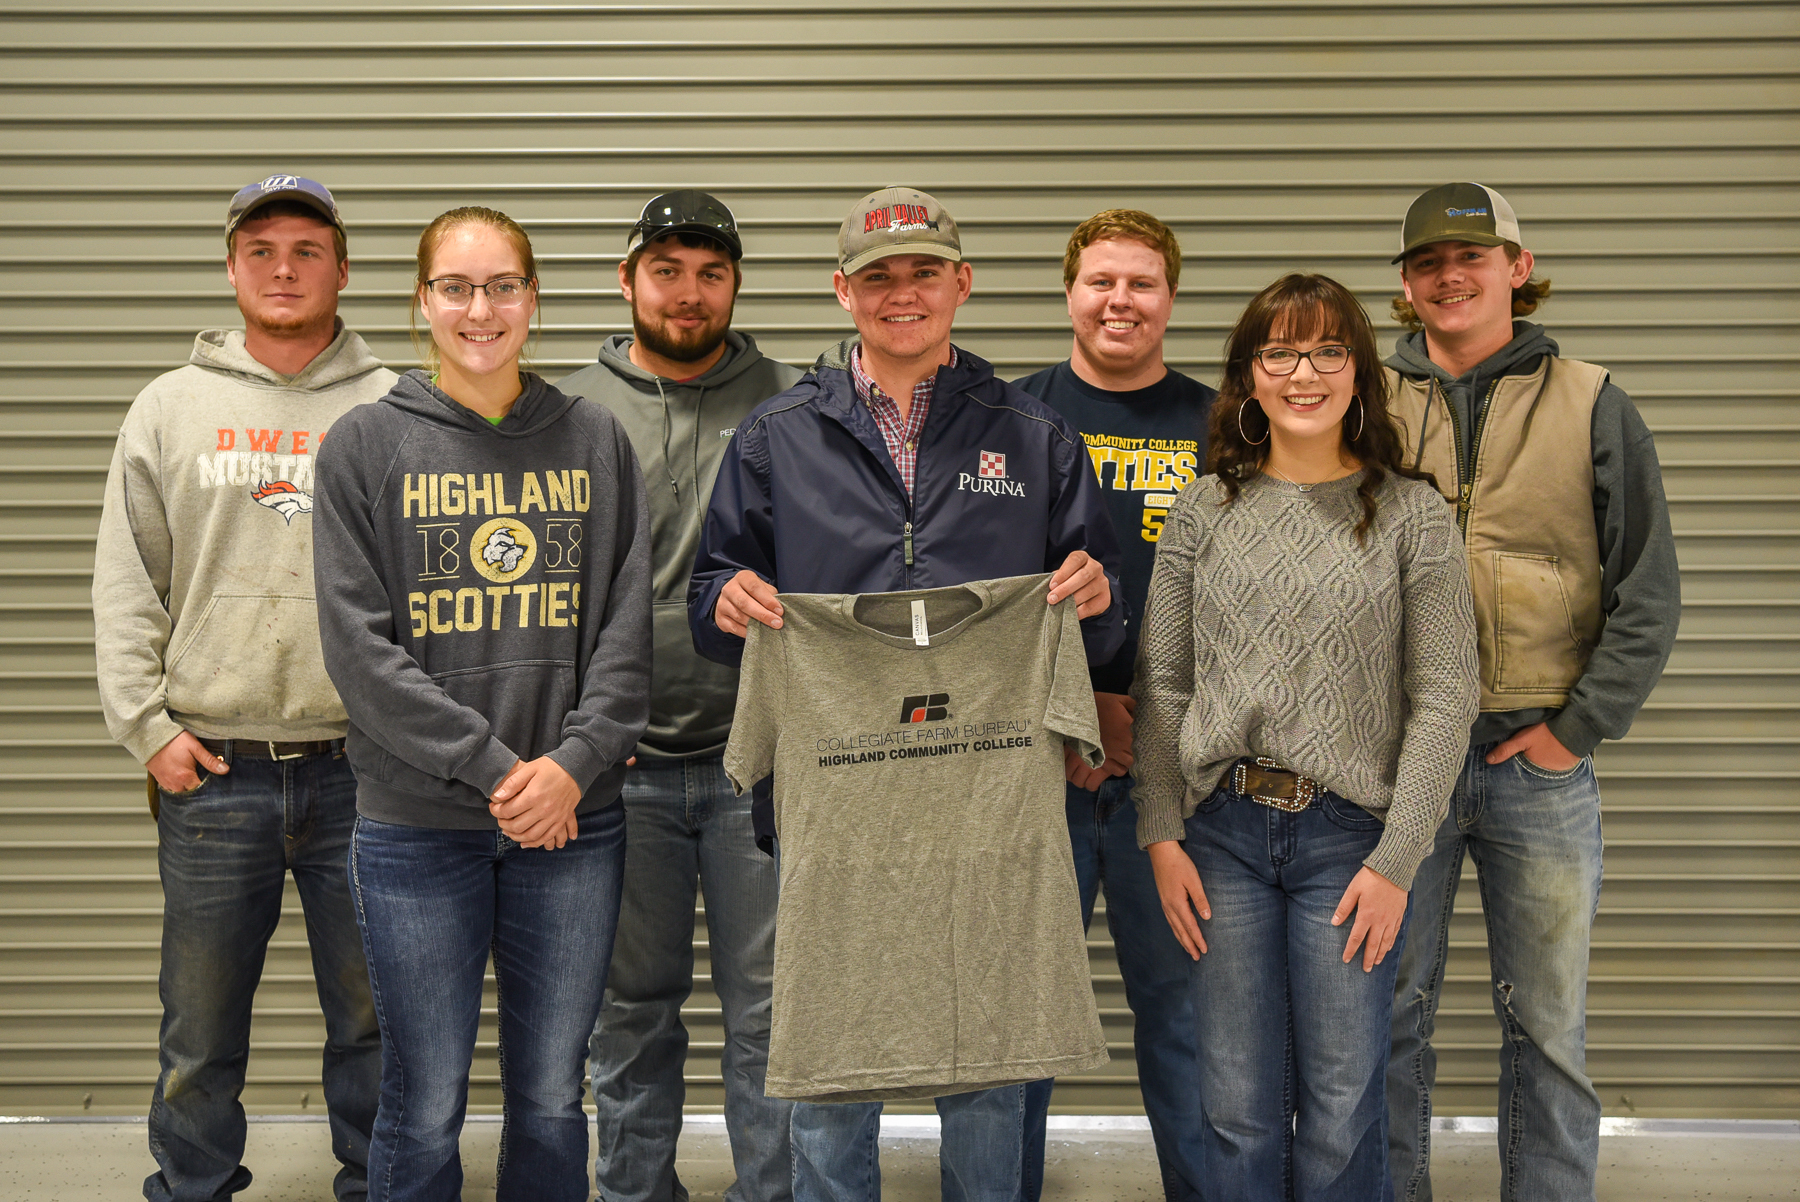 Highland Community College Agriculture Program Becomes Nineteenth Chapter of Collegiate Farm Bureau